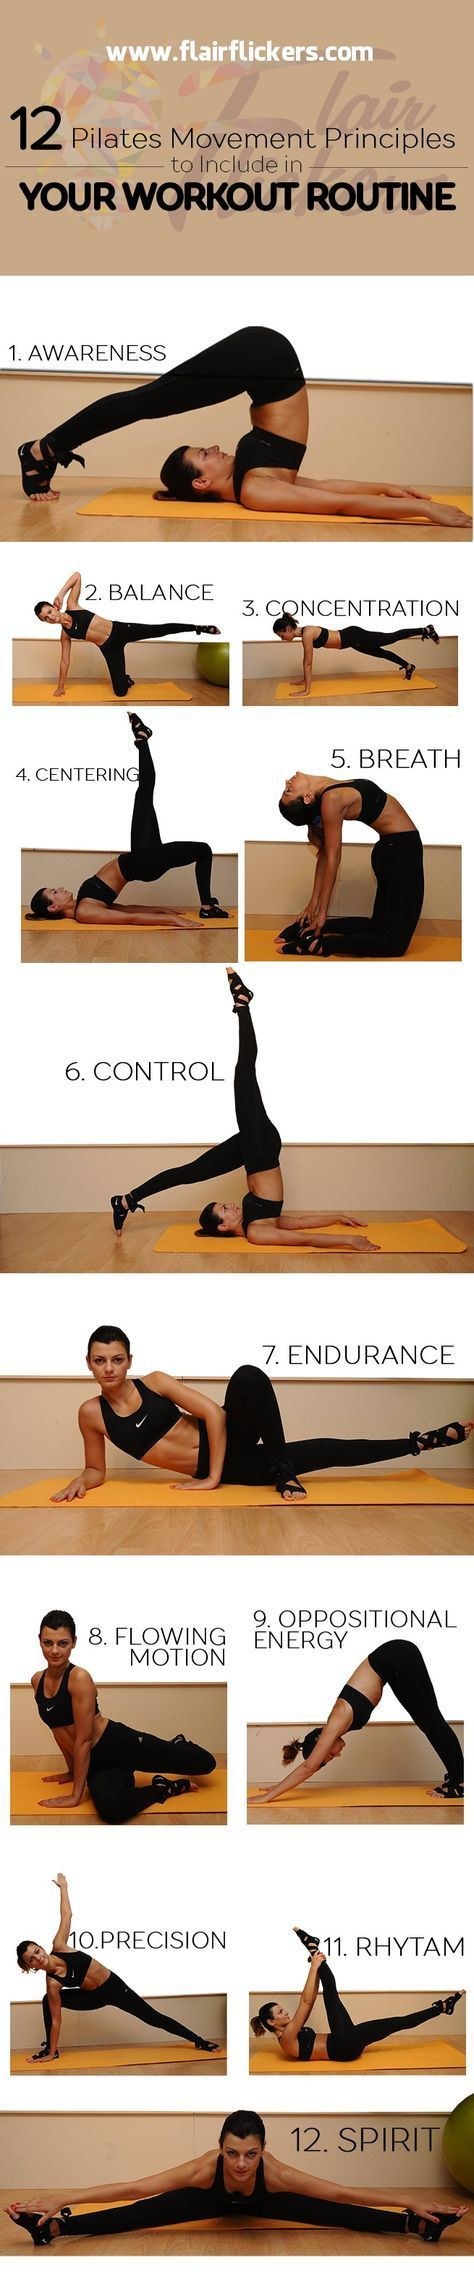 12 Pilates Movement Principles To Include in Your Workout ...